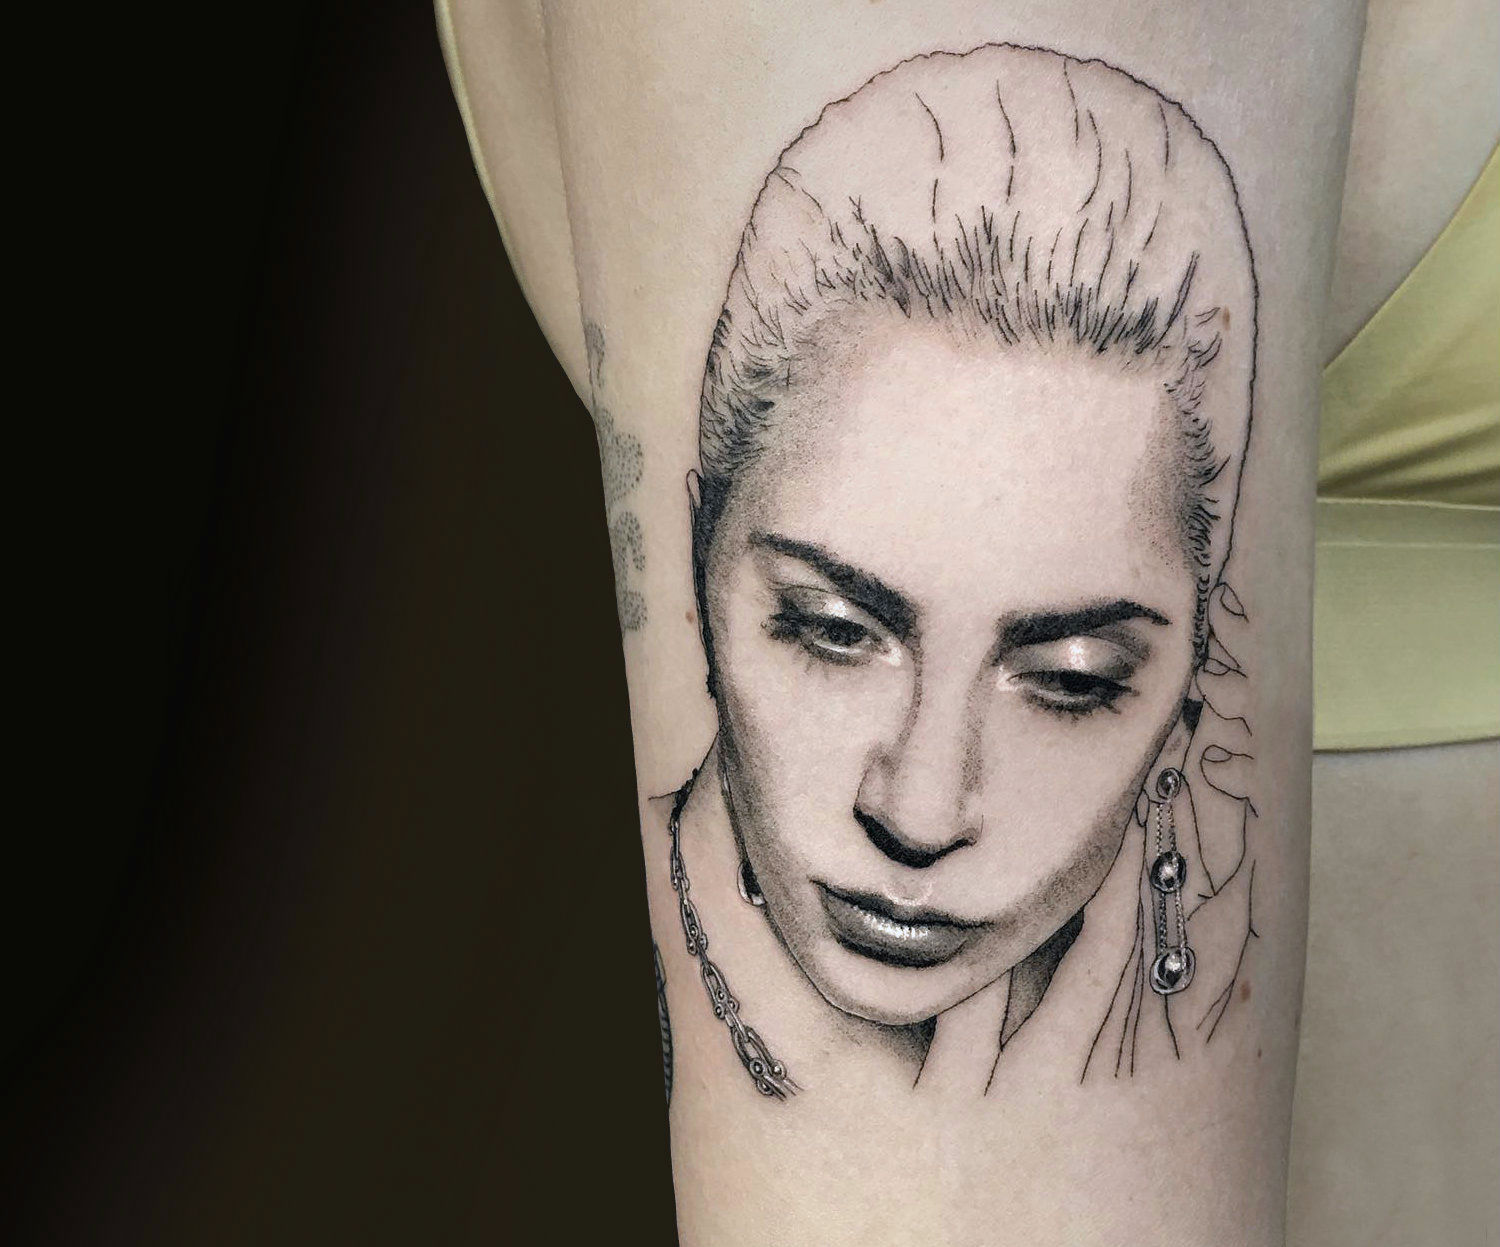 Glossy Lady Gaga portrait tattoo by Shannon Perry